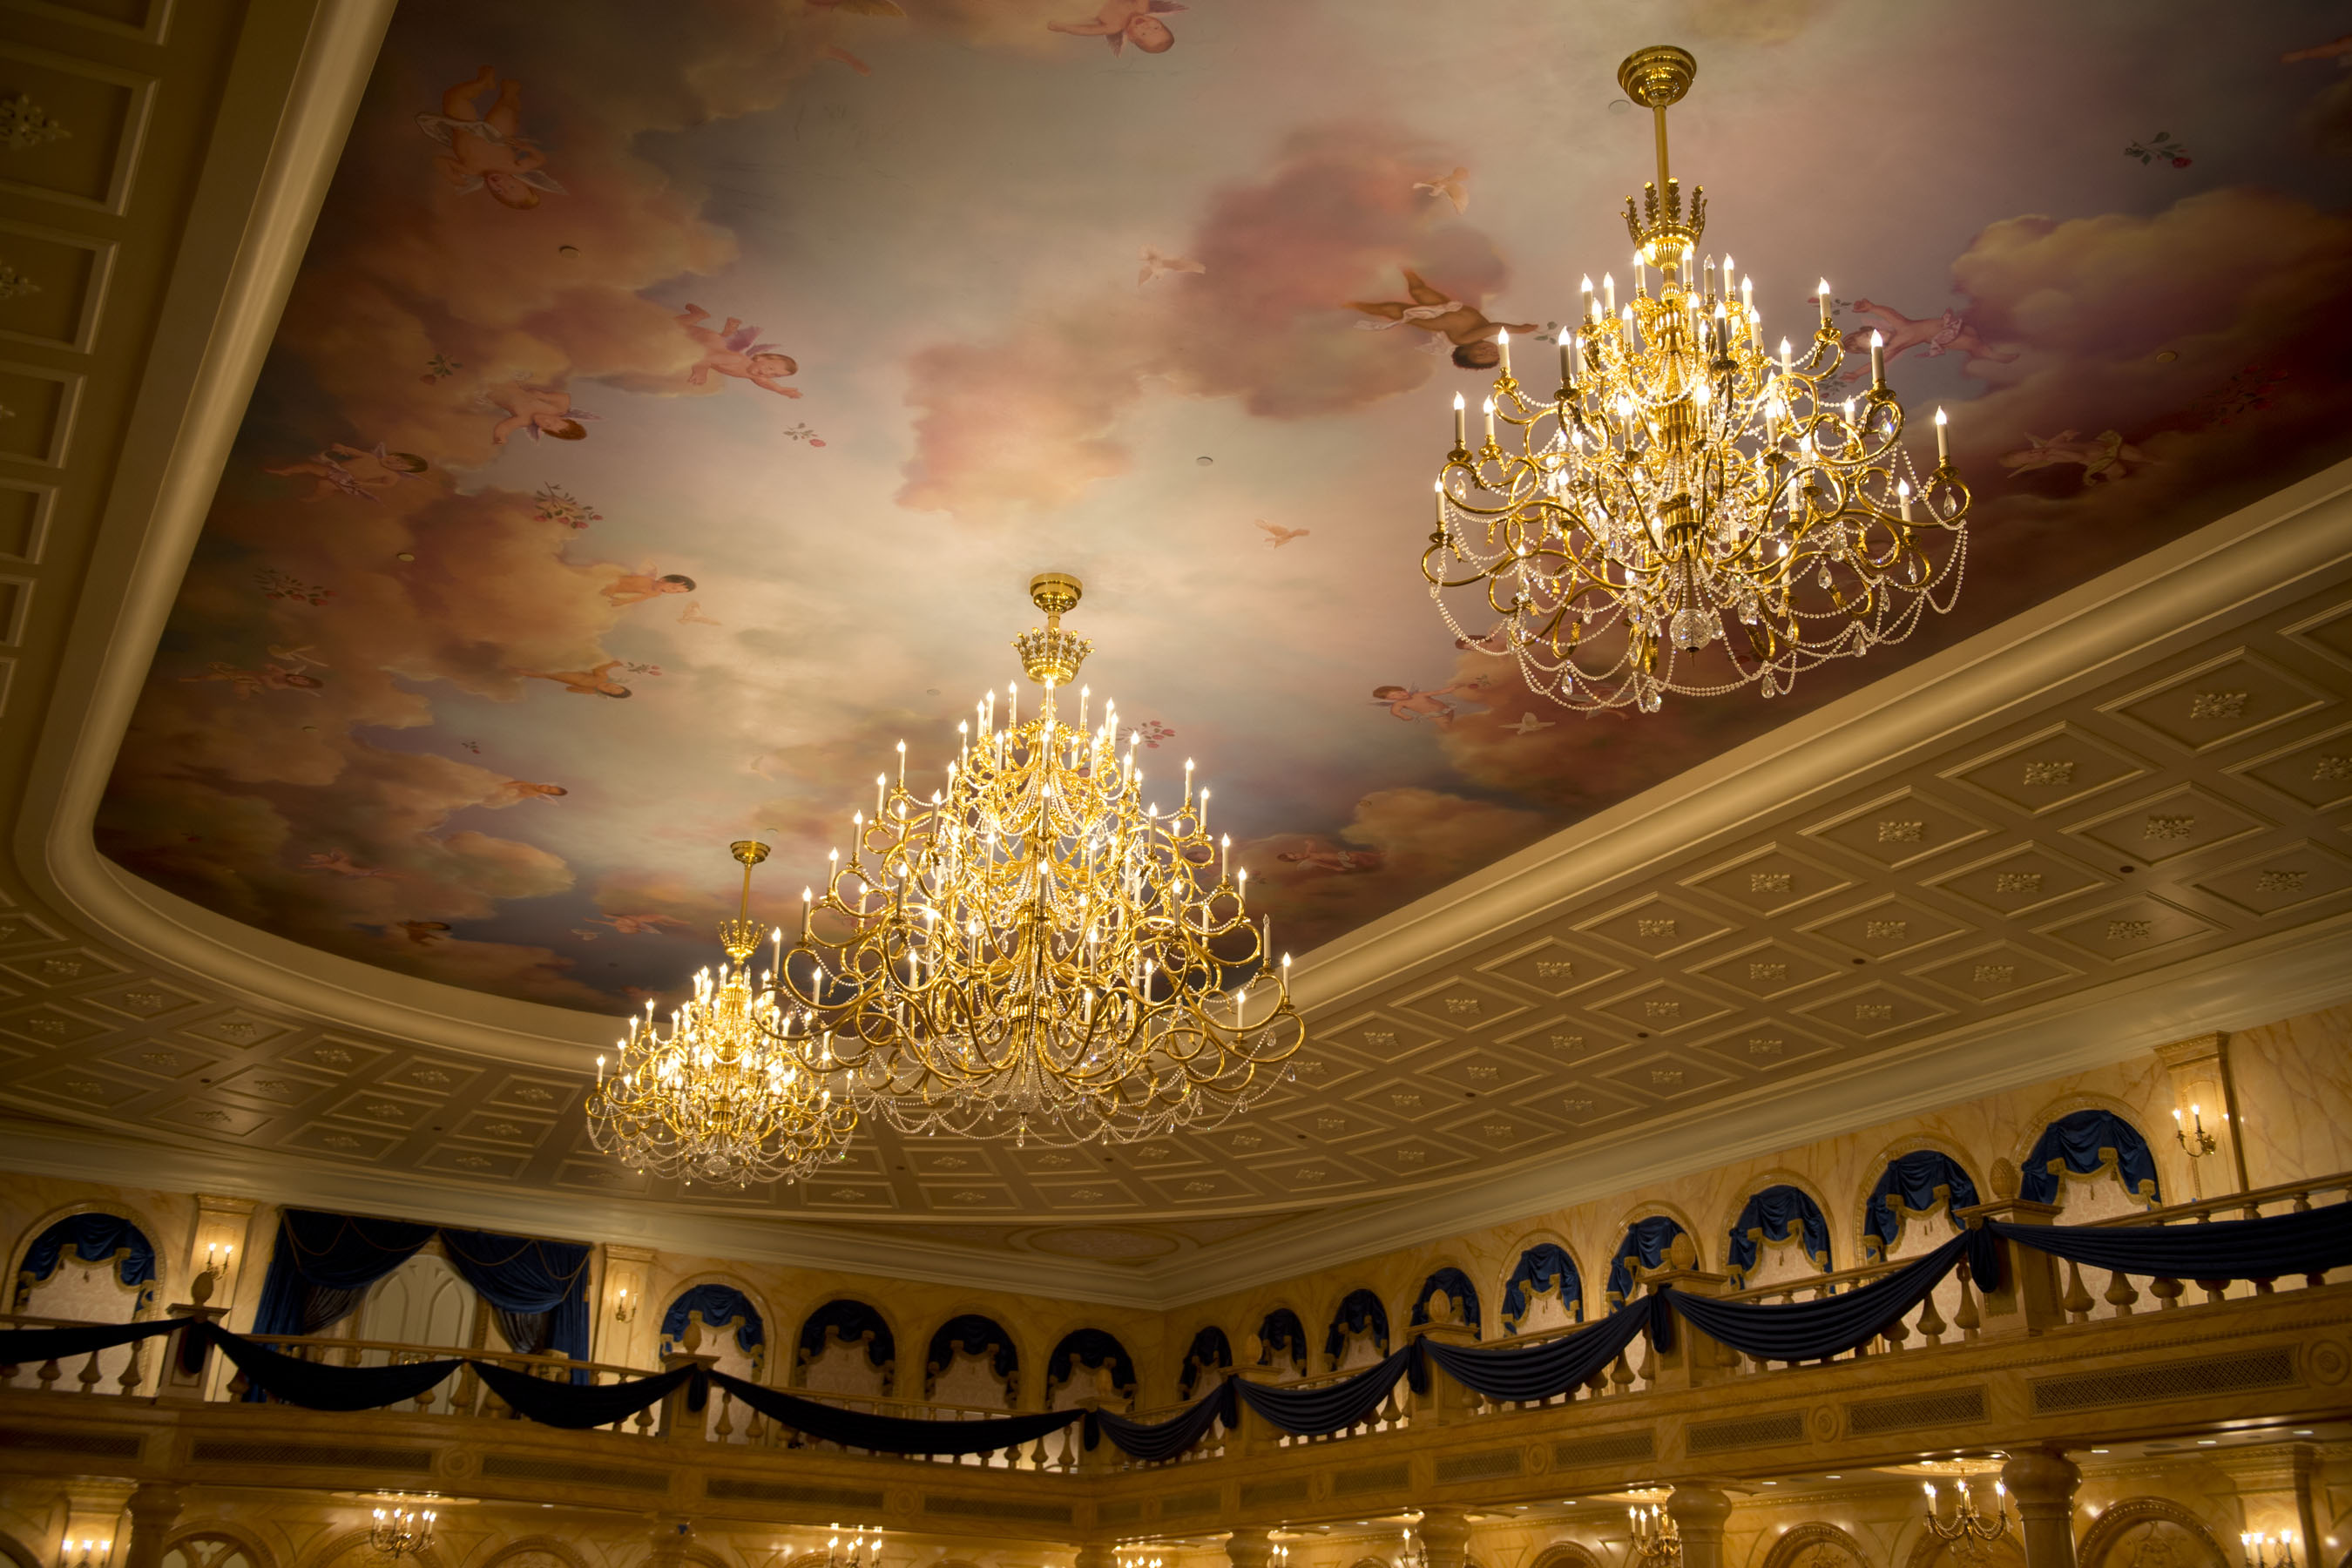 NEWS Be Our Guest Restaurant Details A Cup Of Charming